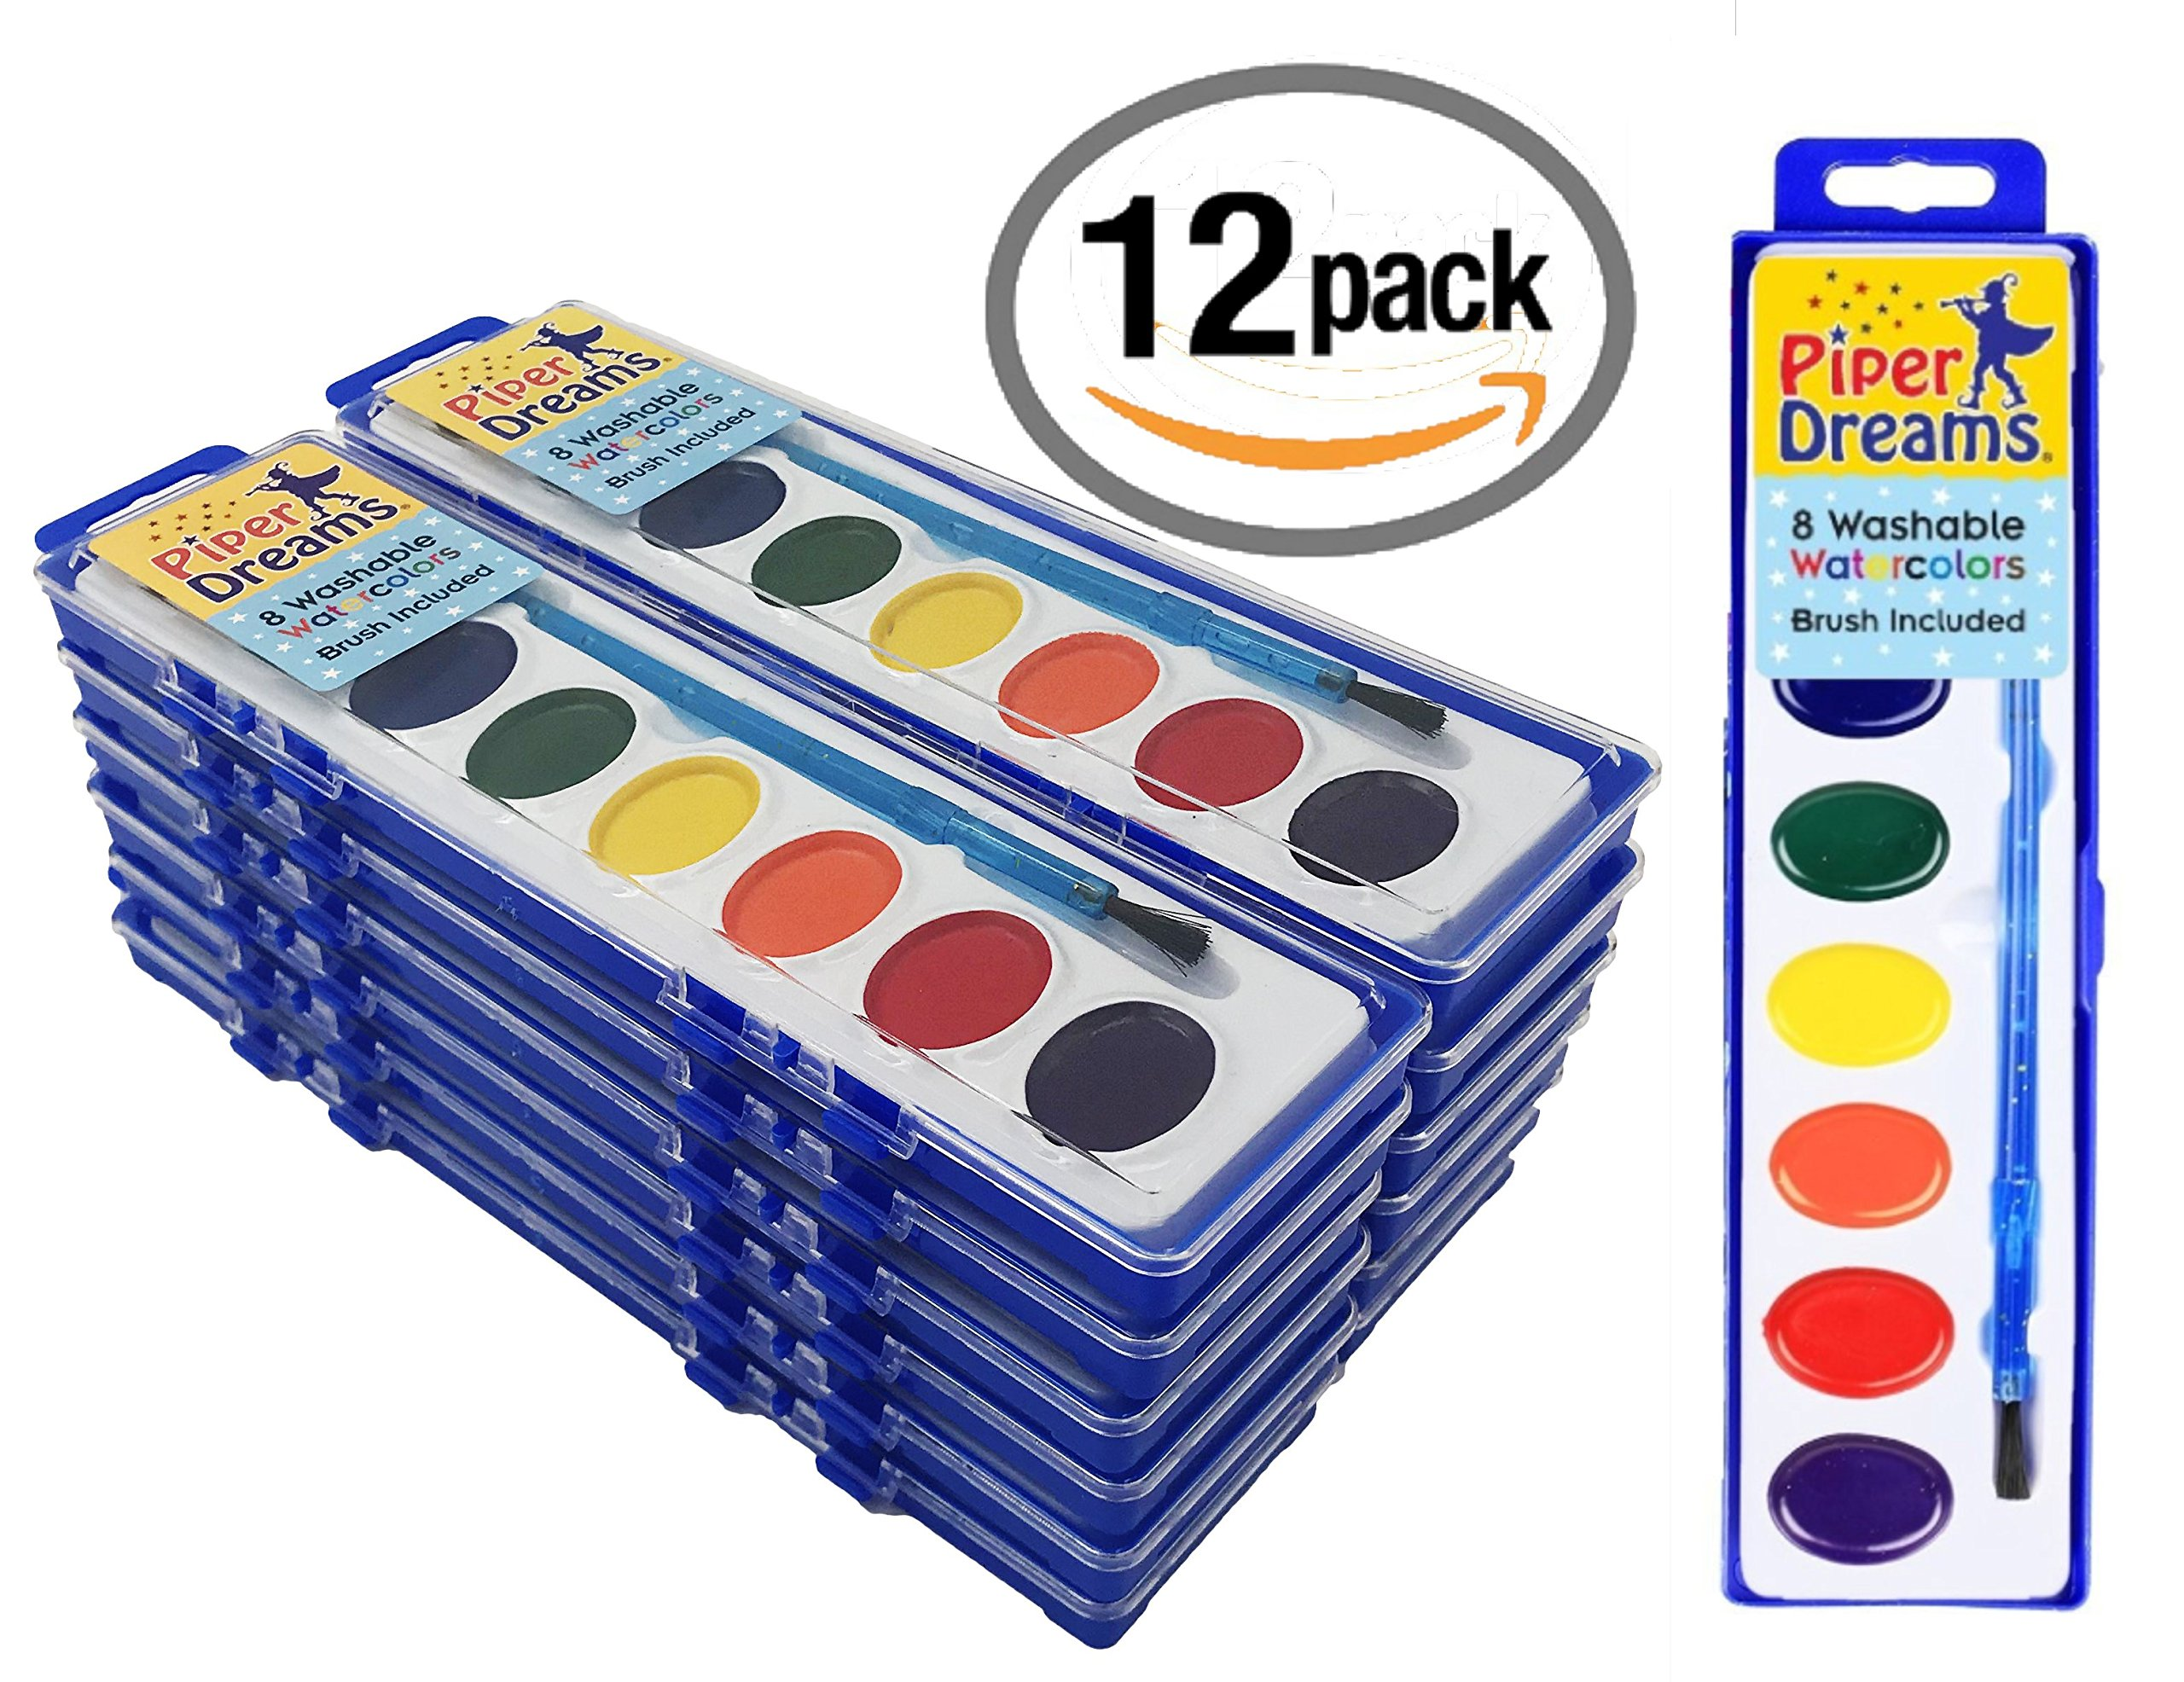 12 Pack - Piper Dreams Watercolor Paint Set - Each Tray Includes 8 Vibrant Colors, a Brush and a Closable Lid for Kids on The Go